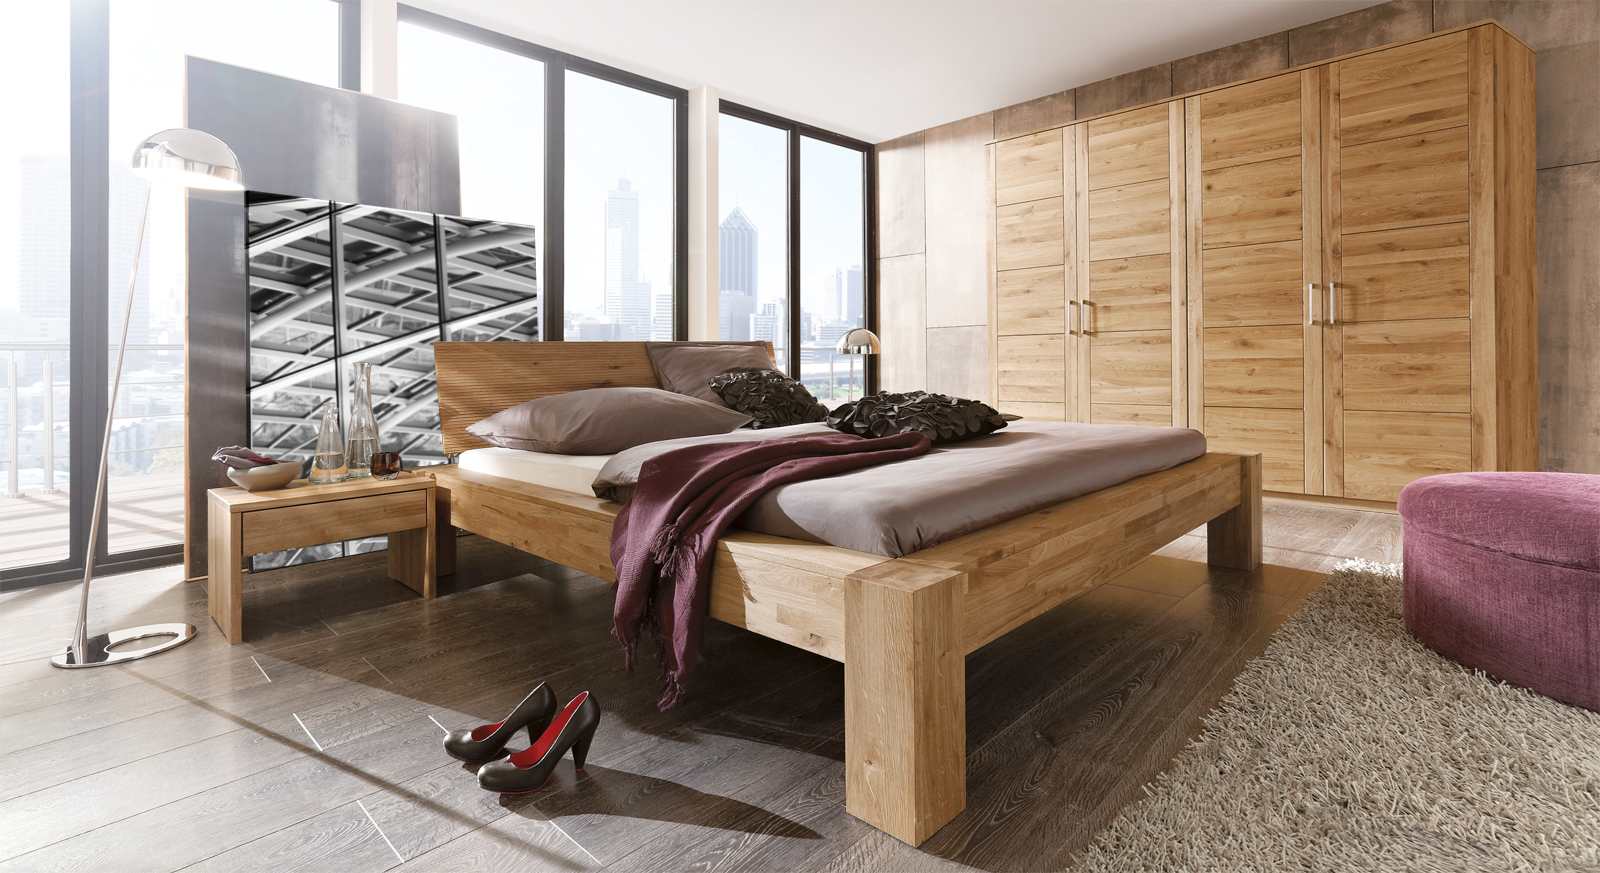 schlafzimmer bett modern modelle ideen bilder. Black Bedroom Furniture Sets. Home Design Ideas